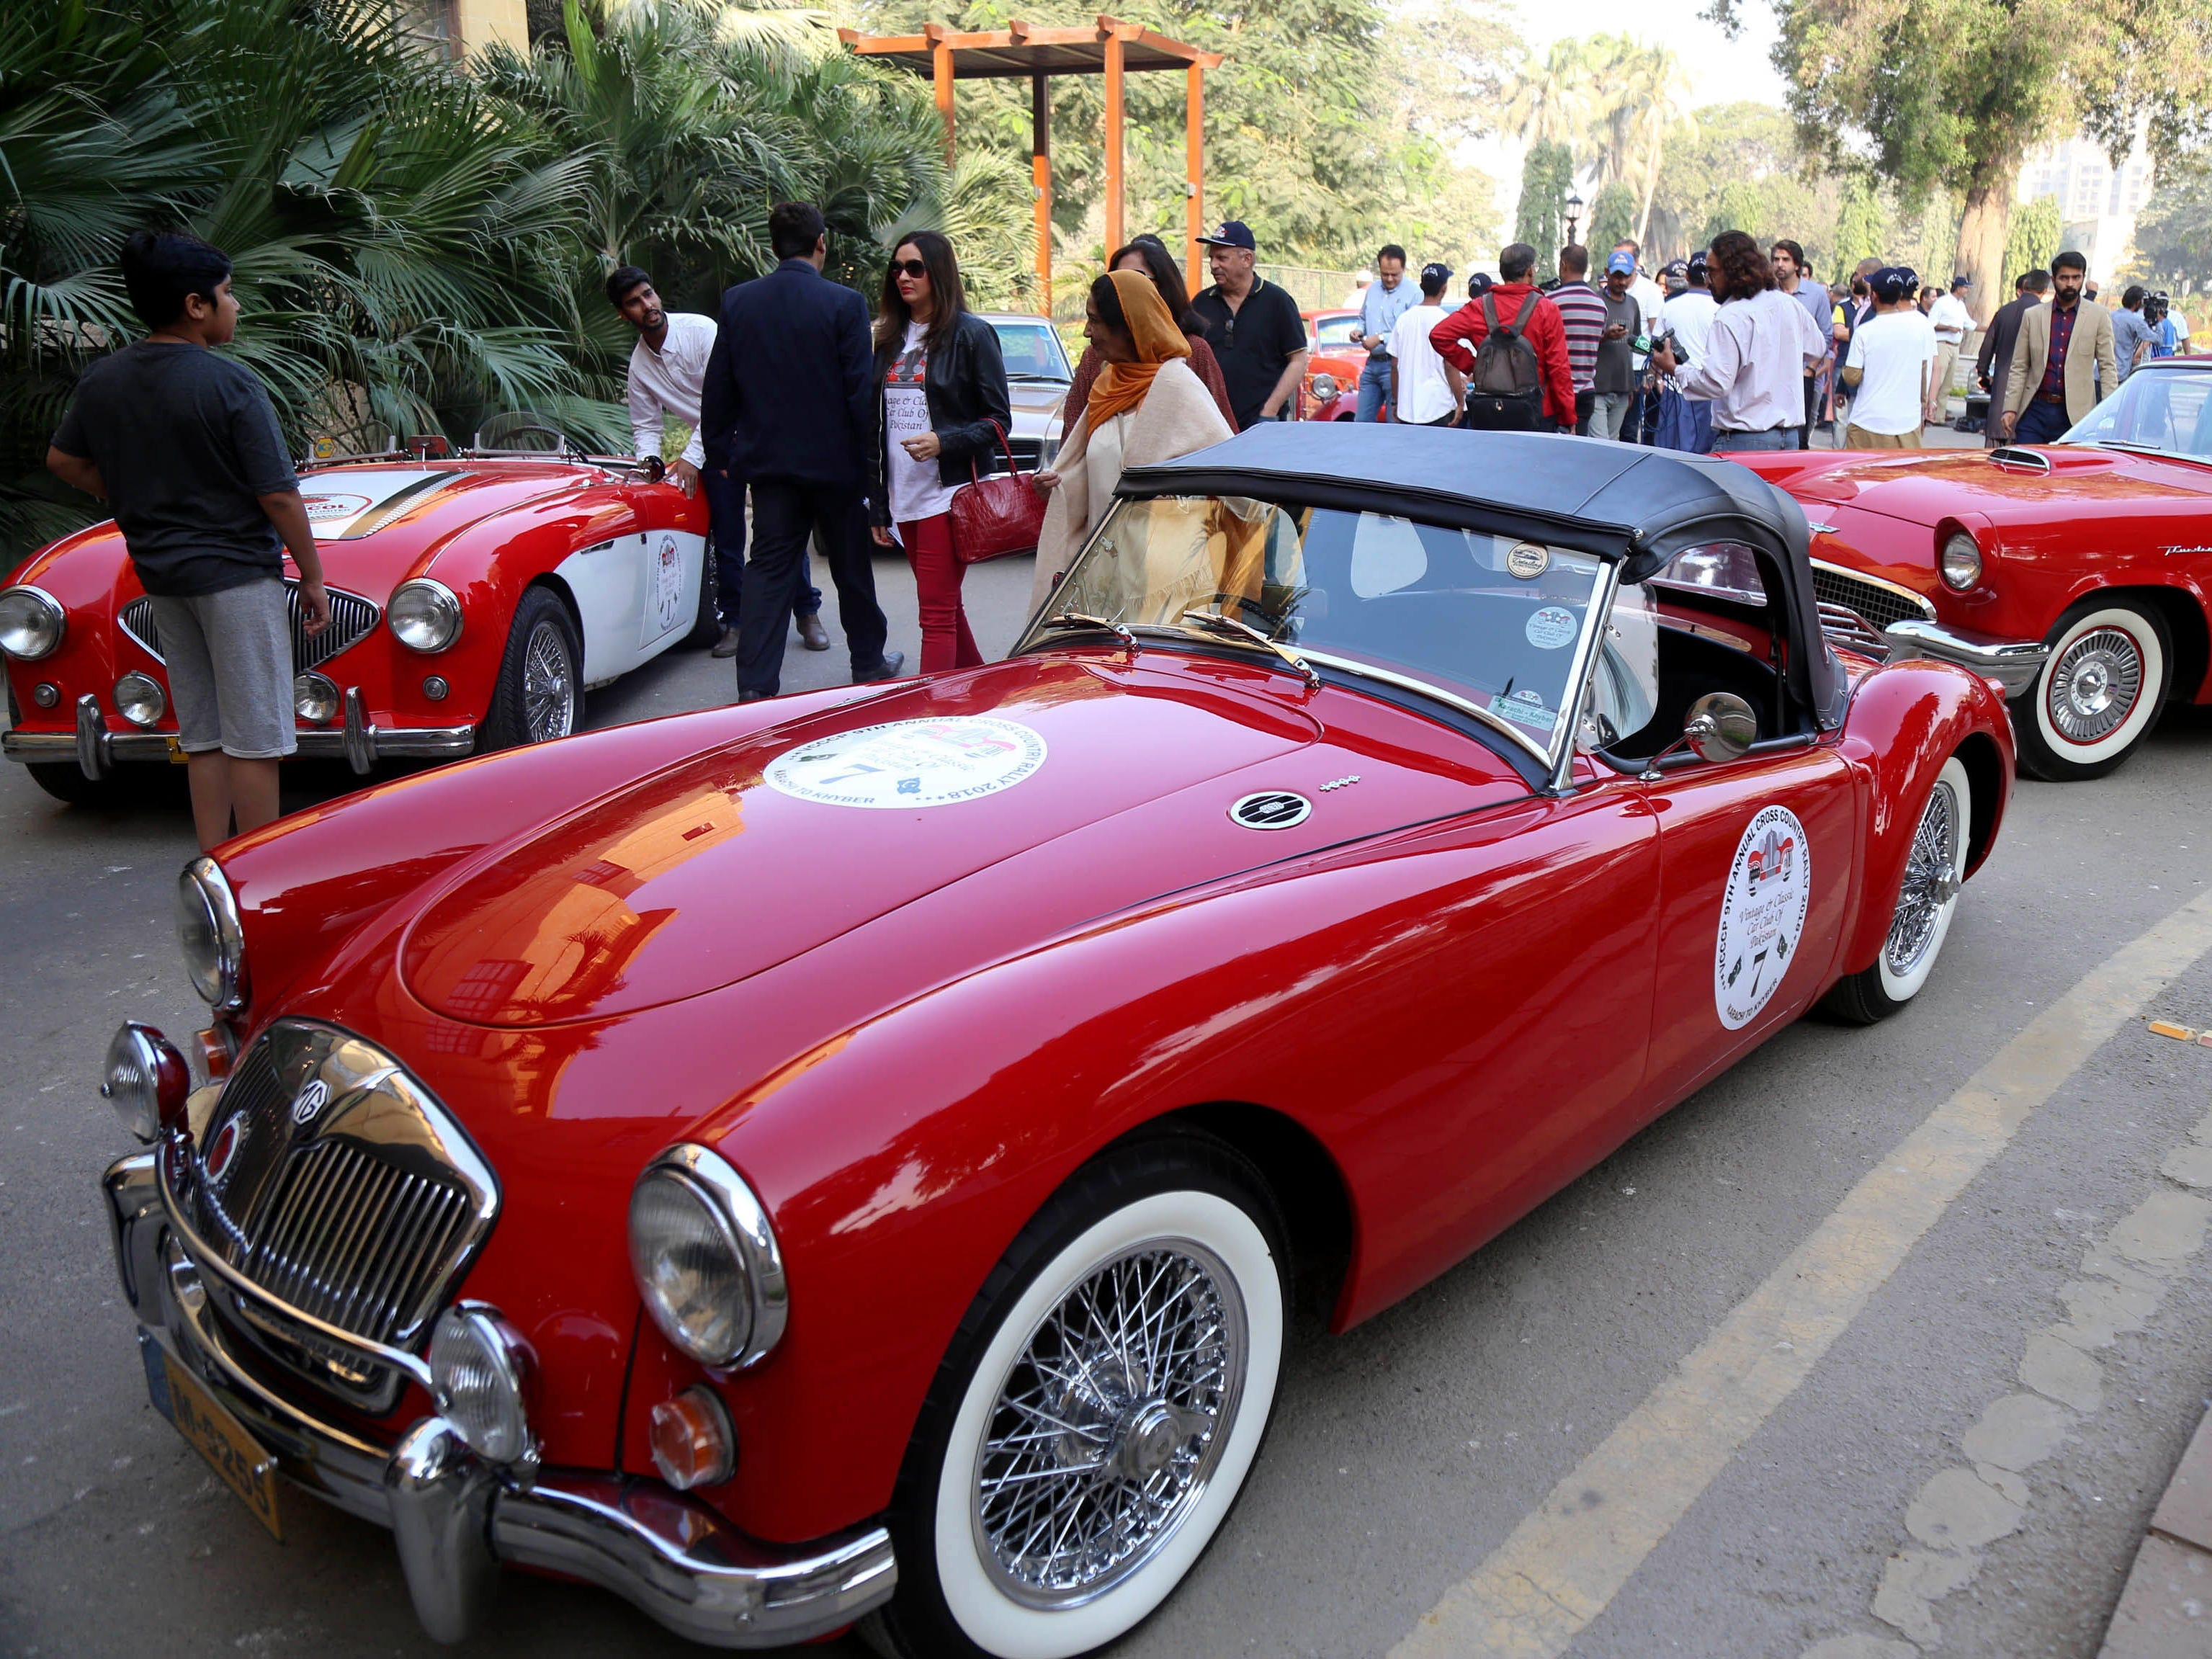 epa07201304 Visitors look at vintage cars during the 9th annual cross-country rally, organised by the Vintage Classic Car Club of Pakistan (VCCCP) in Karachi, Pakistan, 01 December 2018. More than 60 vintage and classic cars were on display from all across Pakistan, some coming all the way from Karachi and heading on to Khyber.  EPA-EFE/REHAN KHAN ORG XMIT: KHI02